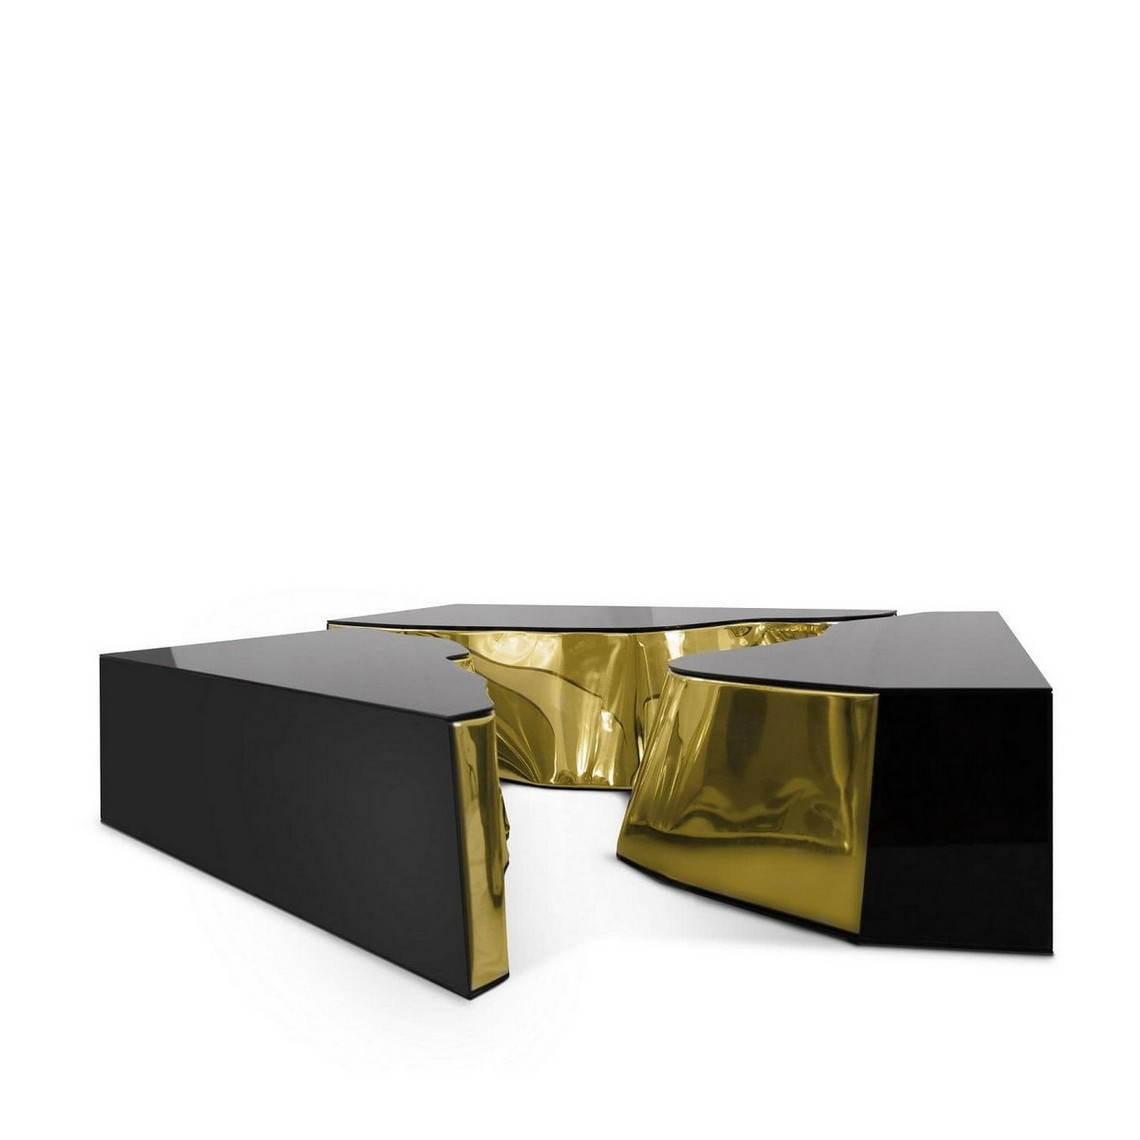 Exquisite Luxury Coffee Tables For Your Living Room luxury coffee tables Exquisite Luxury Coffee Tables For Your Living Room lapiaz 1 1